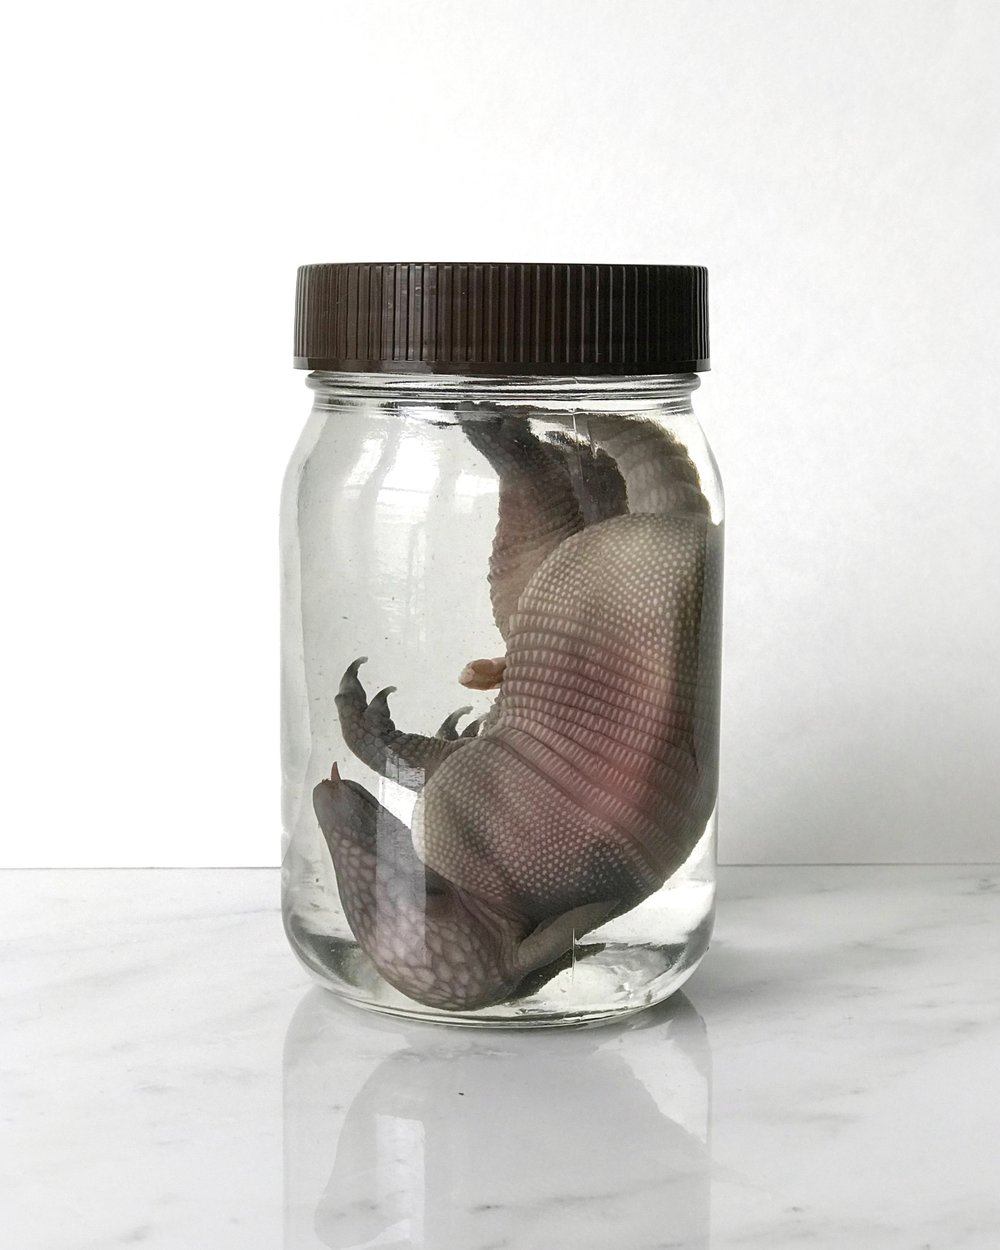 After following all of the steps, your specimen should look great in a clean jar with fresh alcohol.